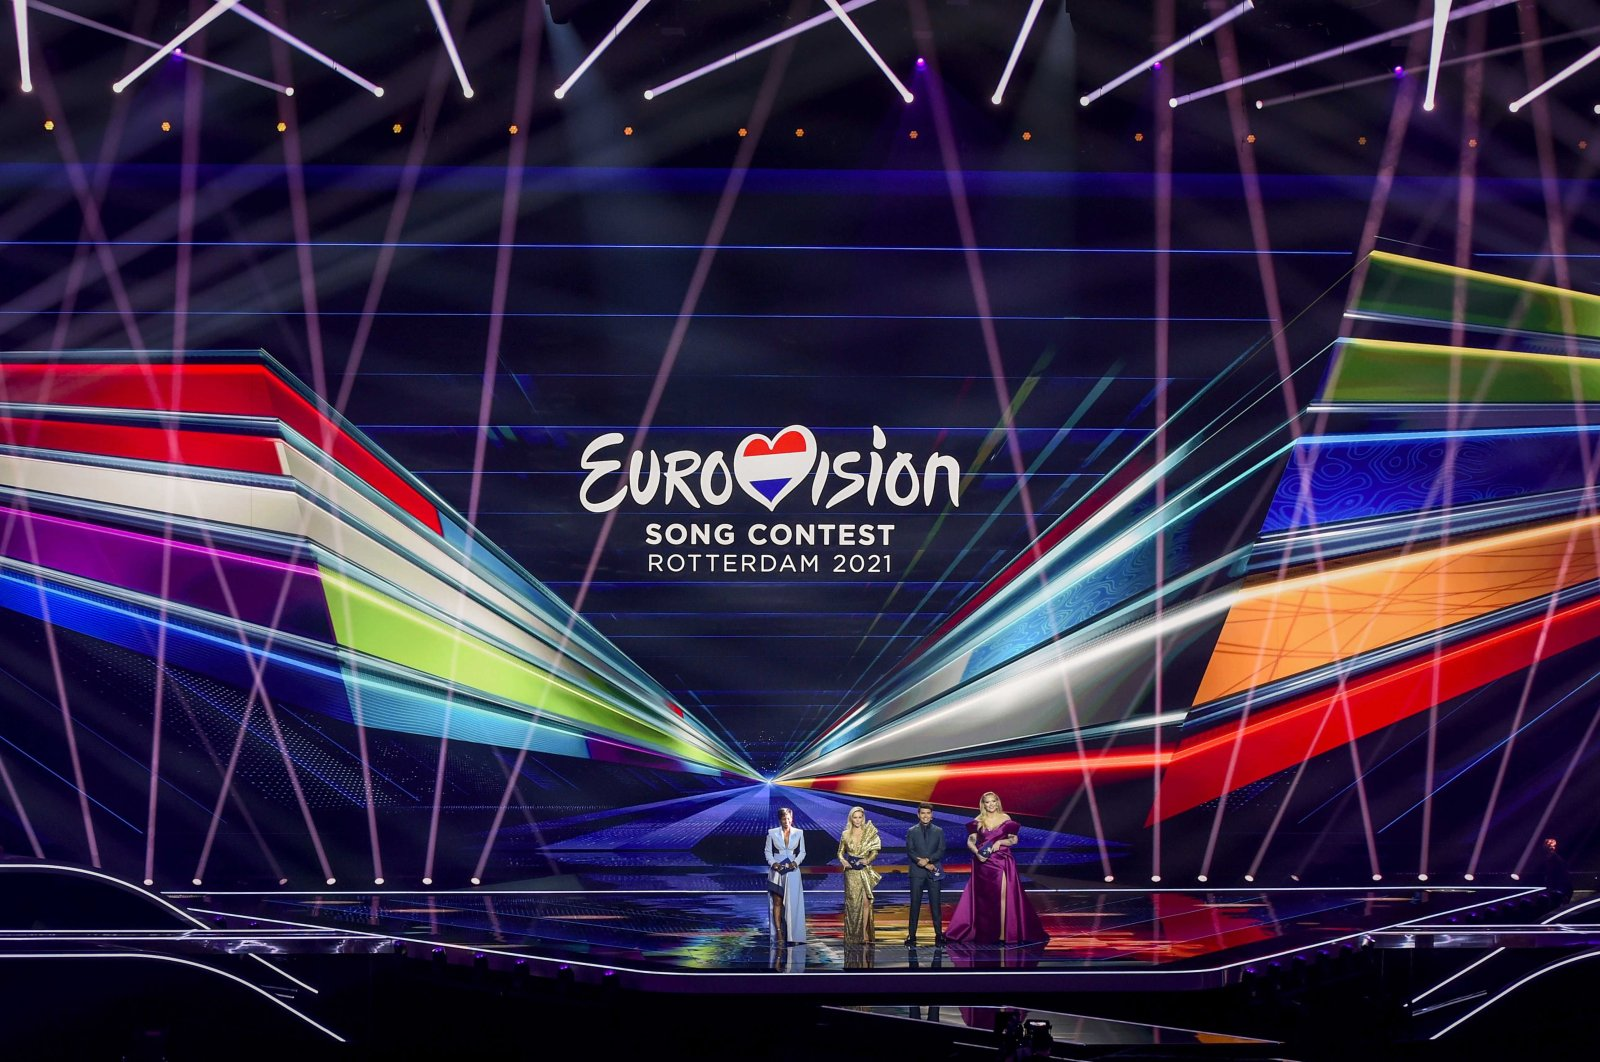 Presenters Edsilia Rombley, Chantal Janzen, Jan Smit and Nikkie de Jager onstage during the dress rehearsal for the Grand Final of the 65th annual Eurovision Song Contest (ESC) at the Rotterdam Ahoy arena, in Rotterdam, the Netherlands, May 21, 2021. (EPA Photo)